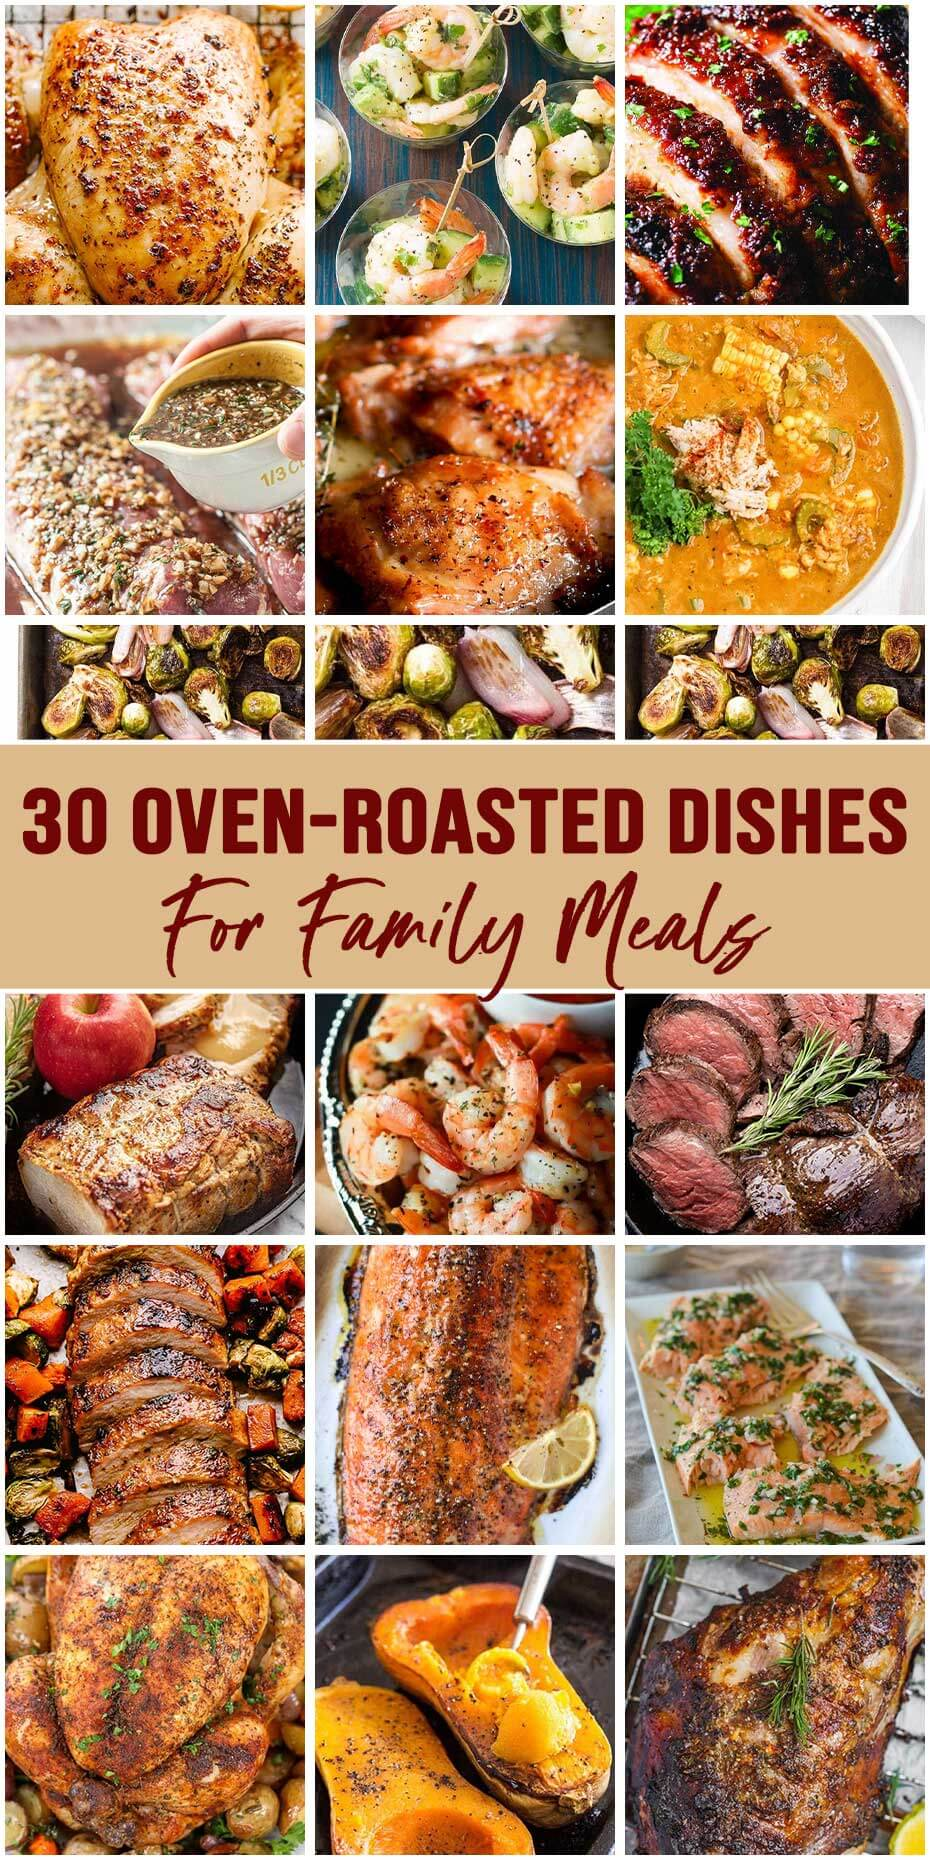 30 Oven-Roasted Dishes That You Can't Resist